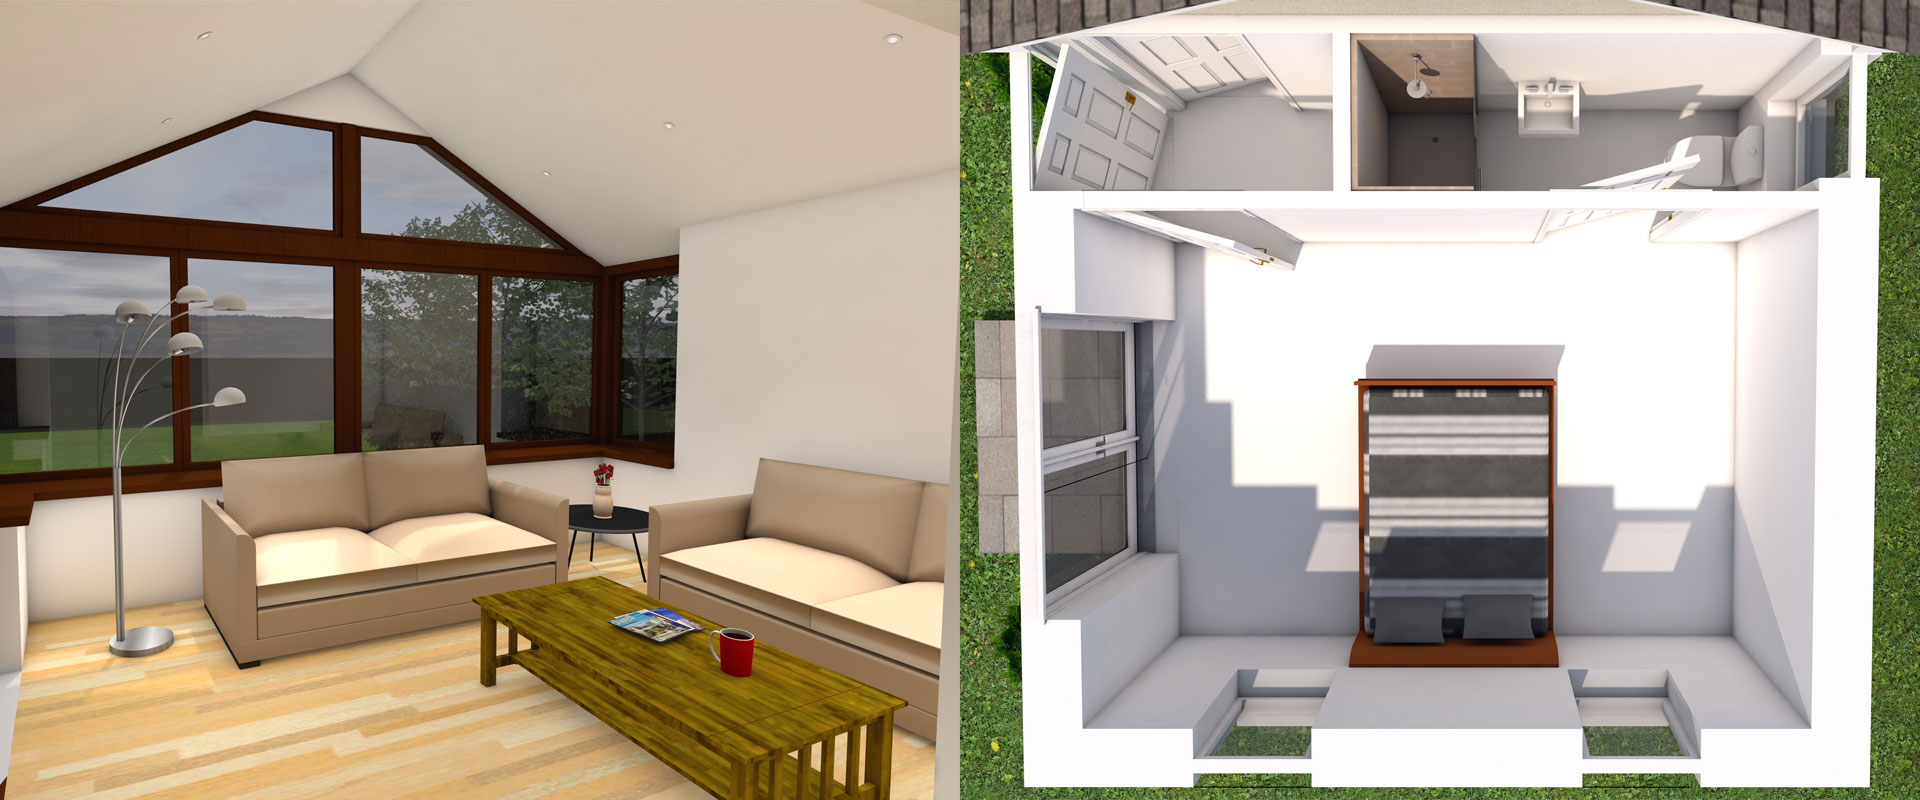 free house extension design software 28 images house